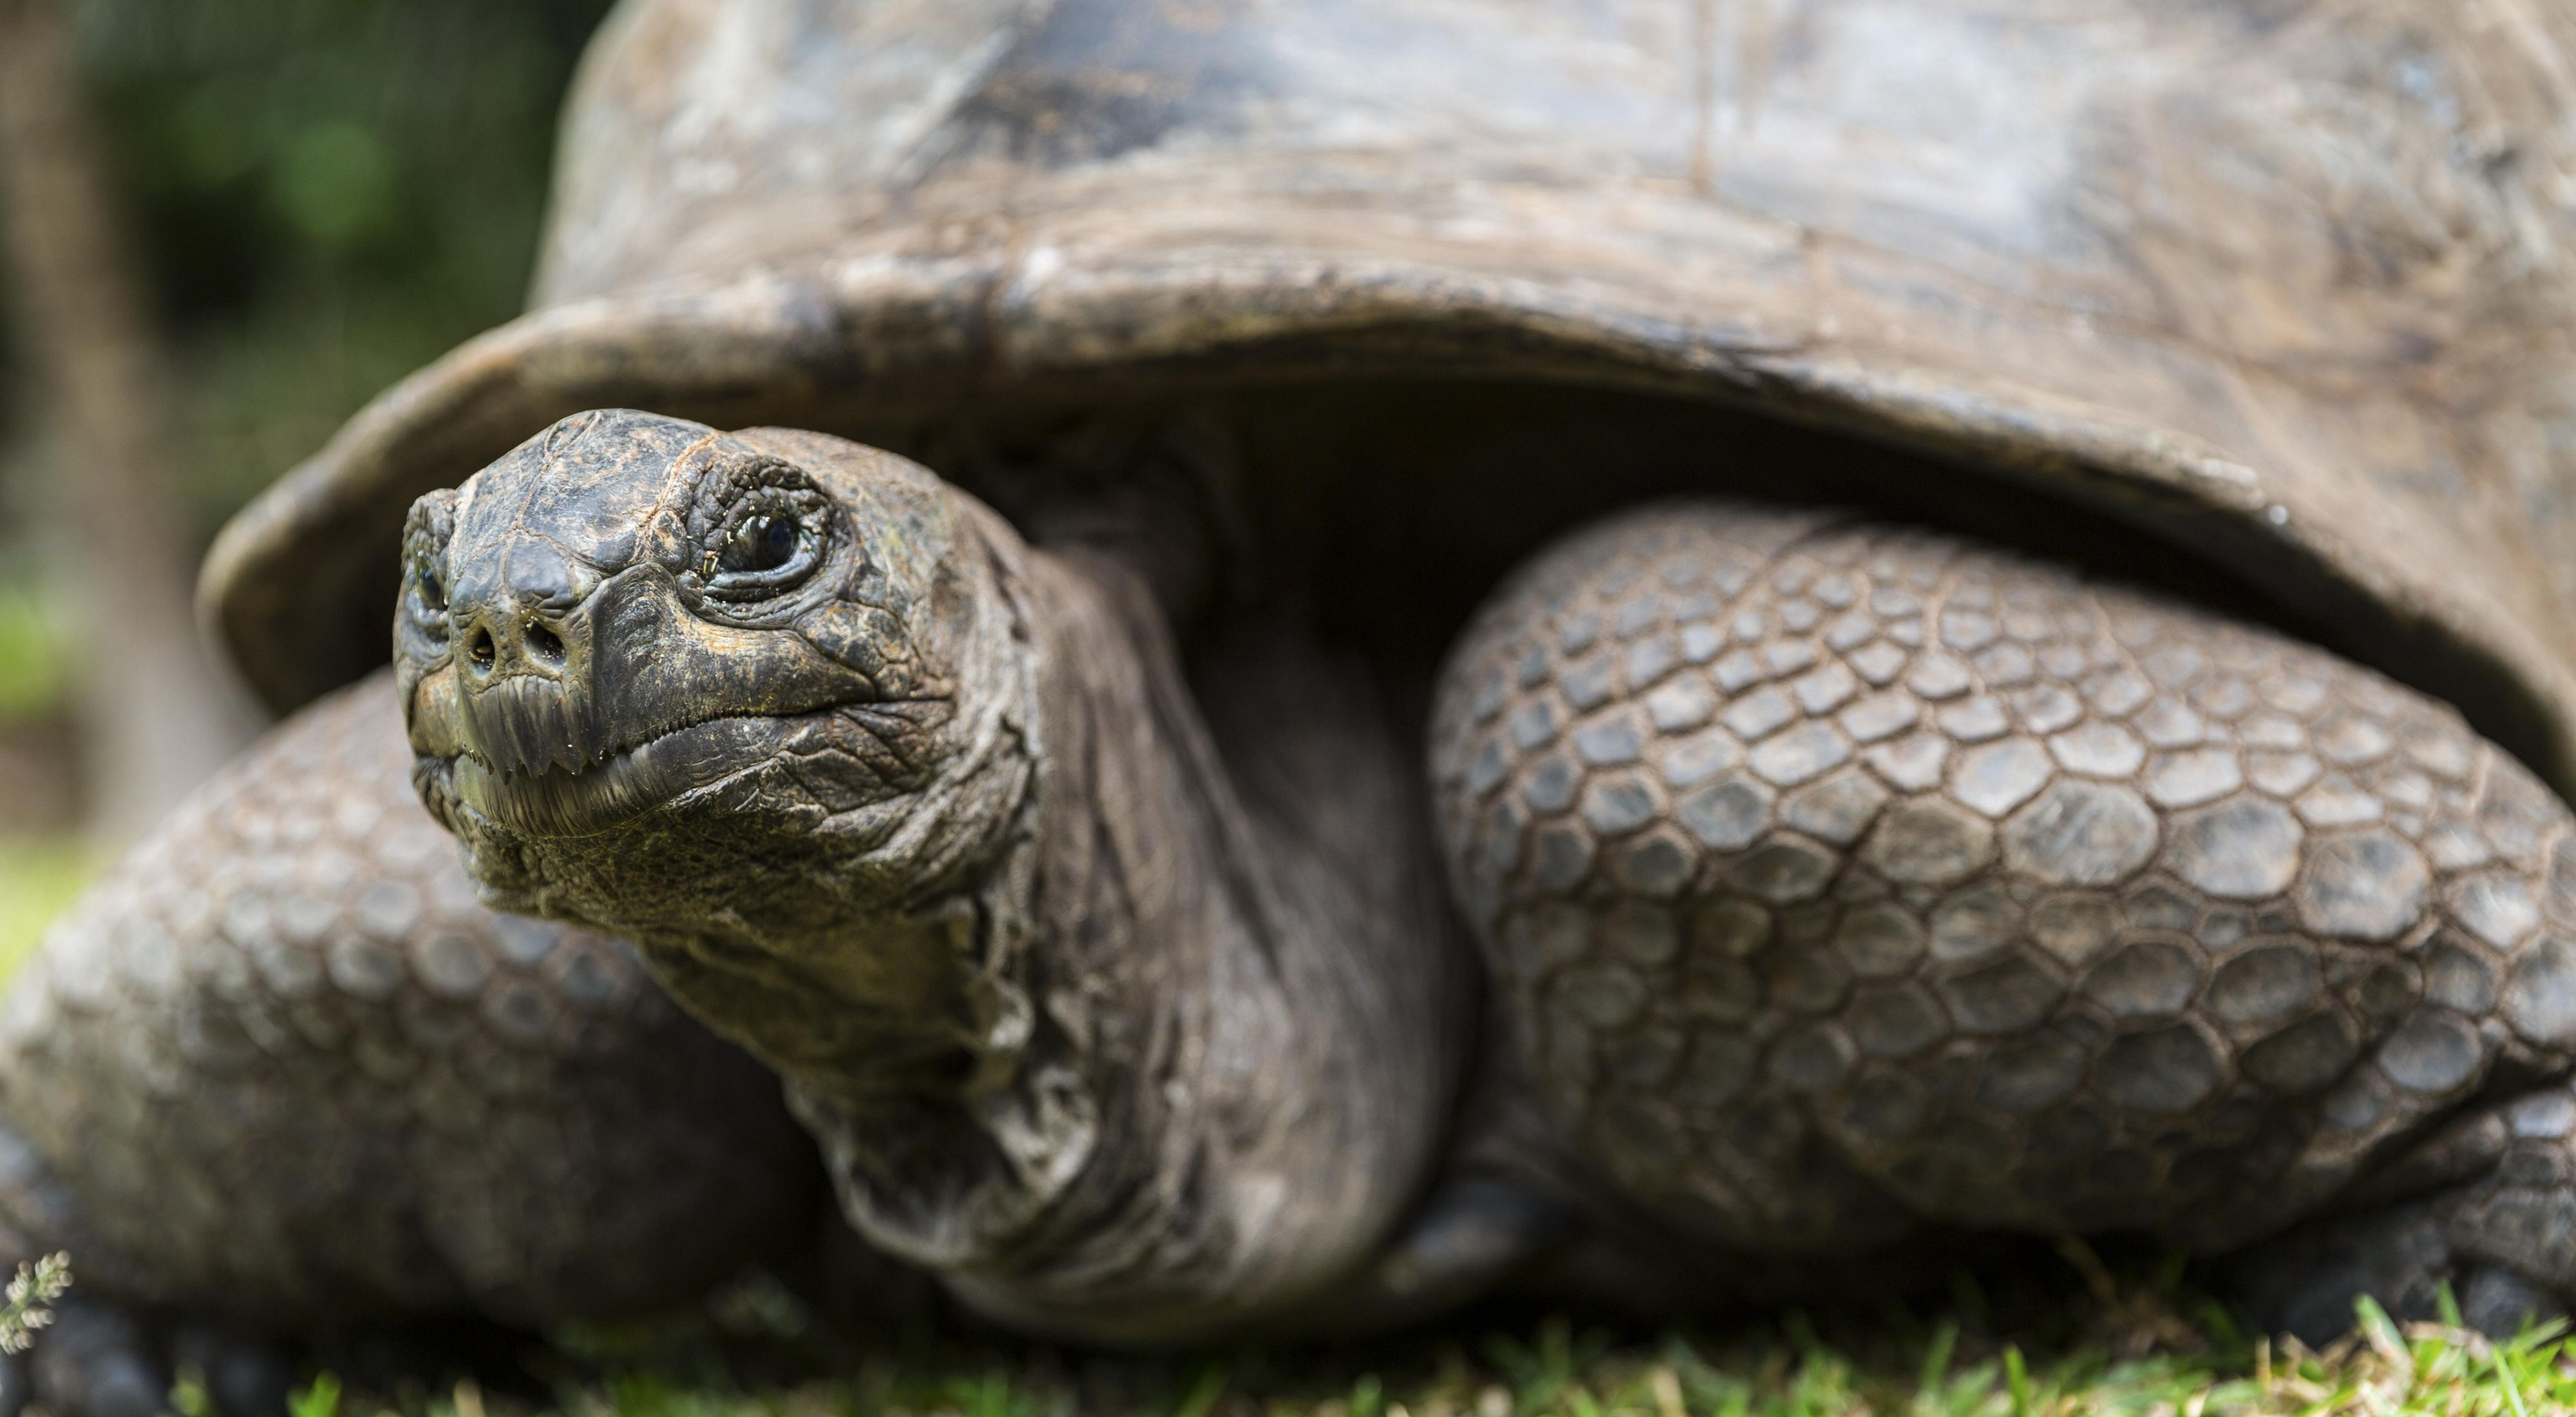 About 300 free roaming Aldabra giant tortoises (Aldabrachelys gigantea) live in Curieuse Marine National Park, Curieuse Island, Seychelles. They are second largest population in the world.